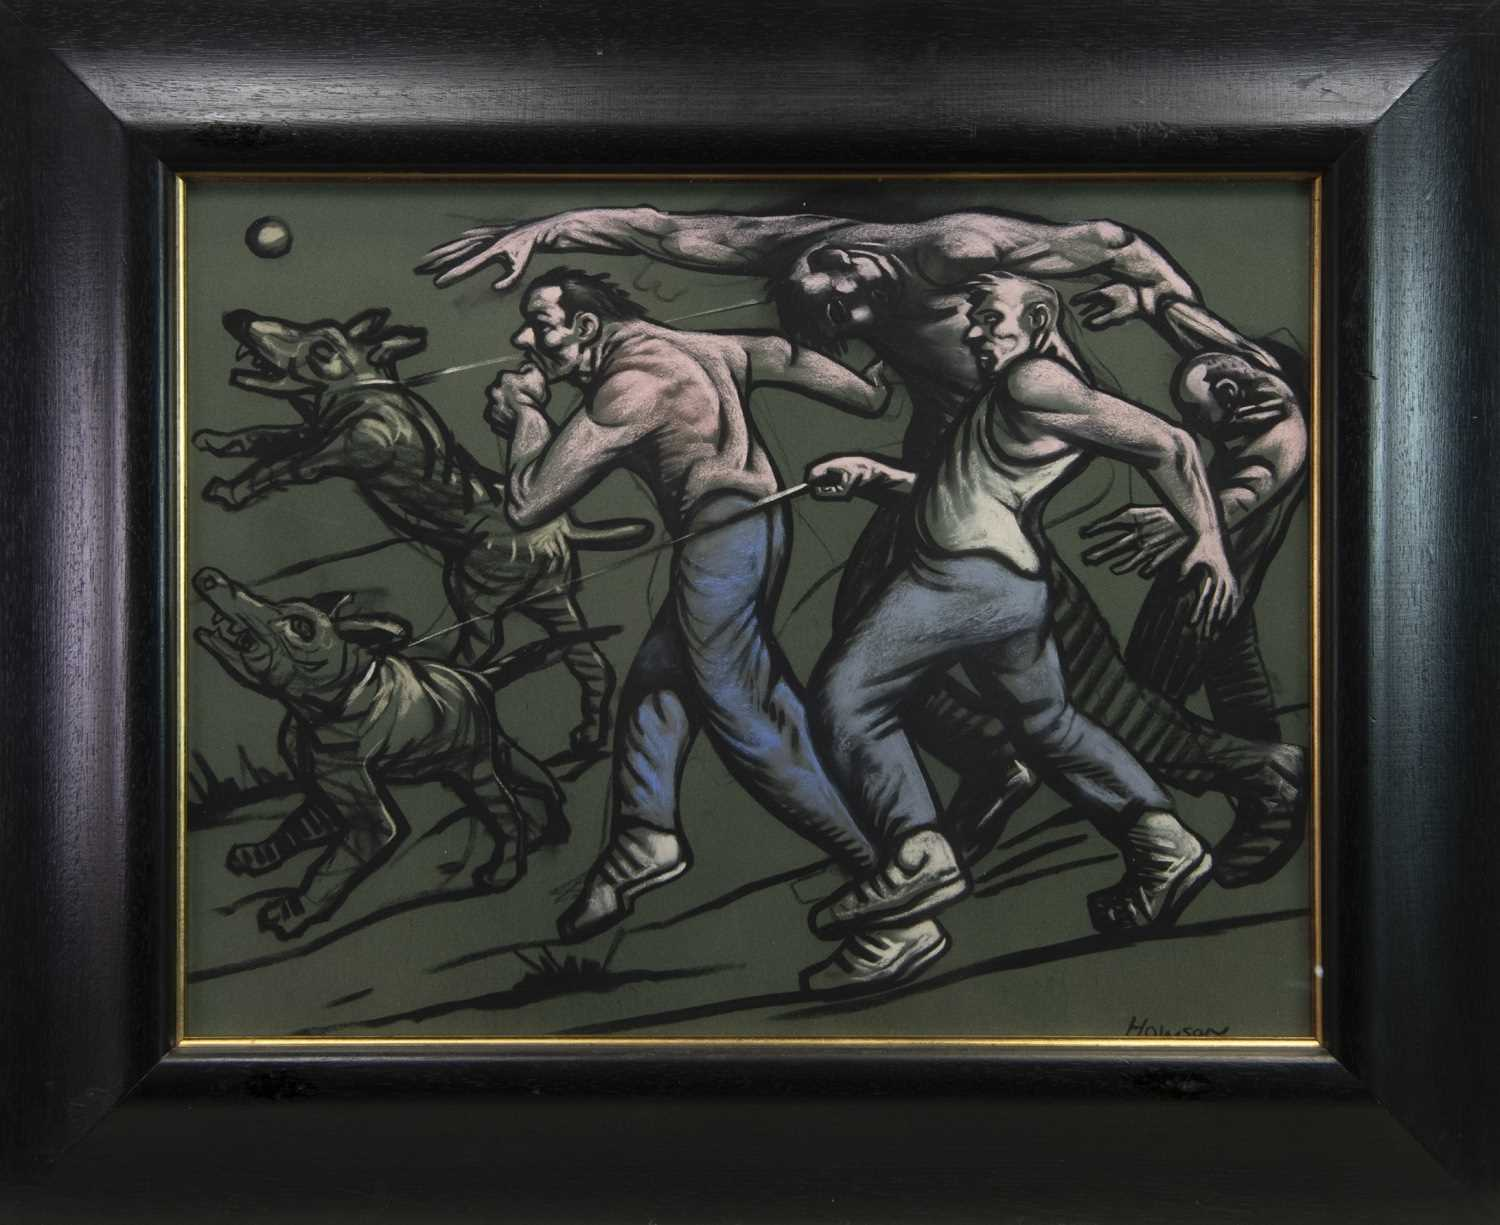 Lot 674 - BAND OF BROTHERS, A PASTEL BY PETER HOWSON